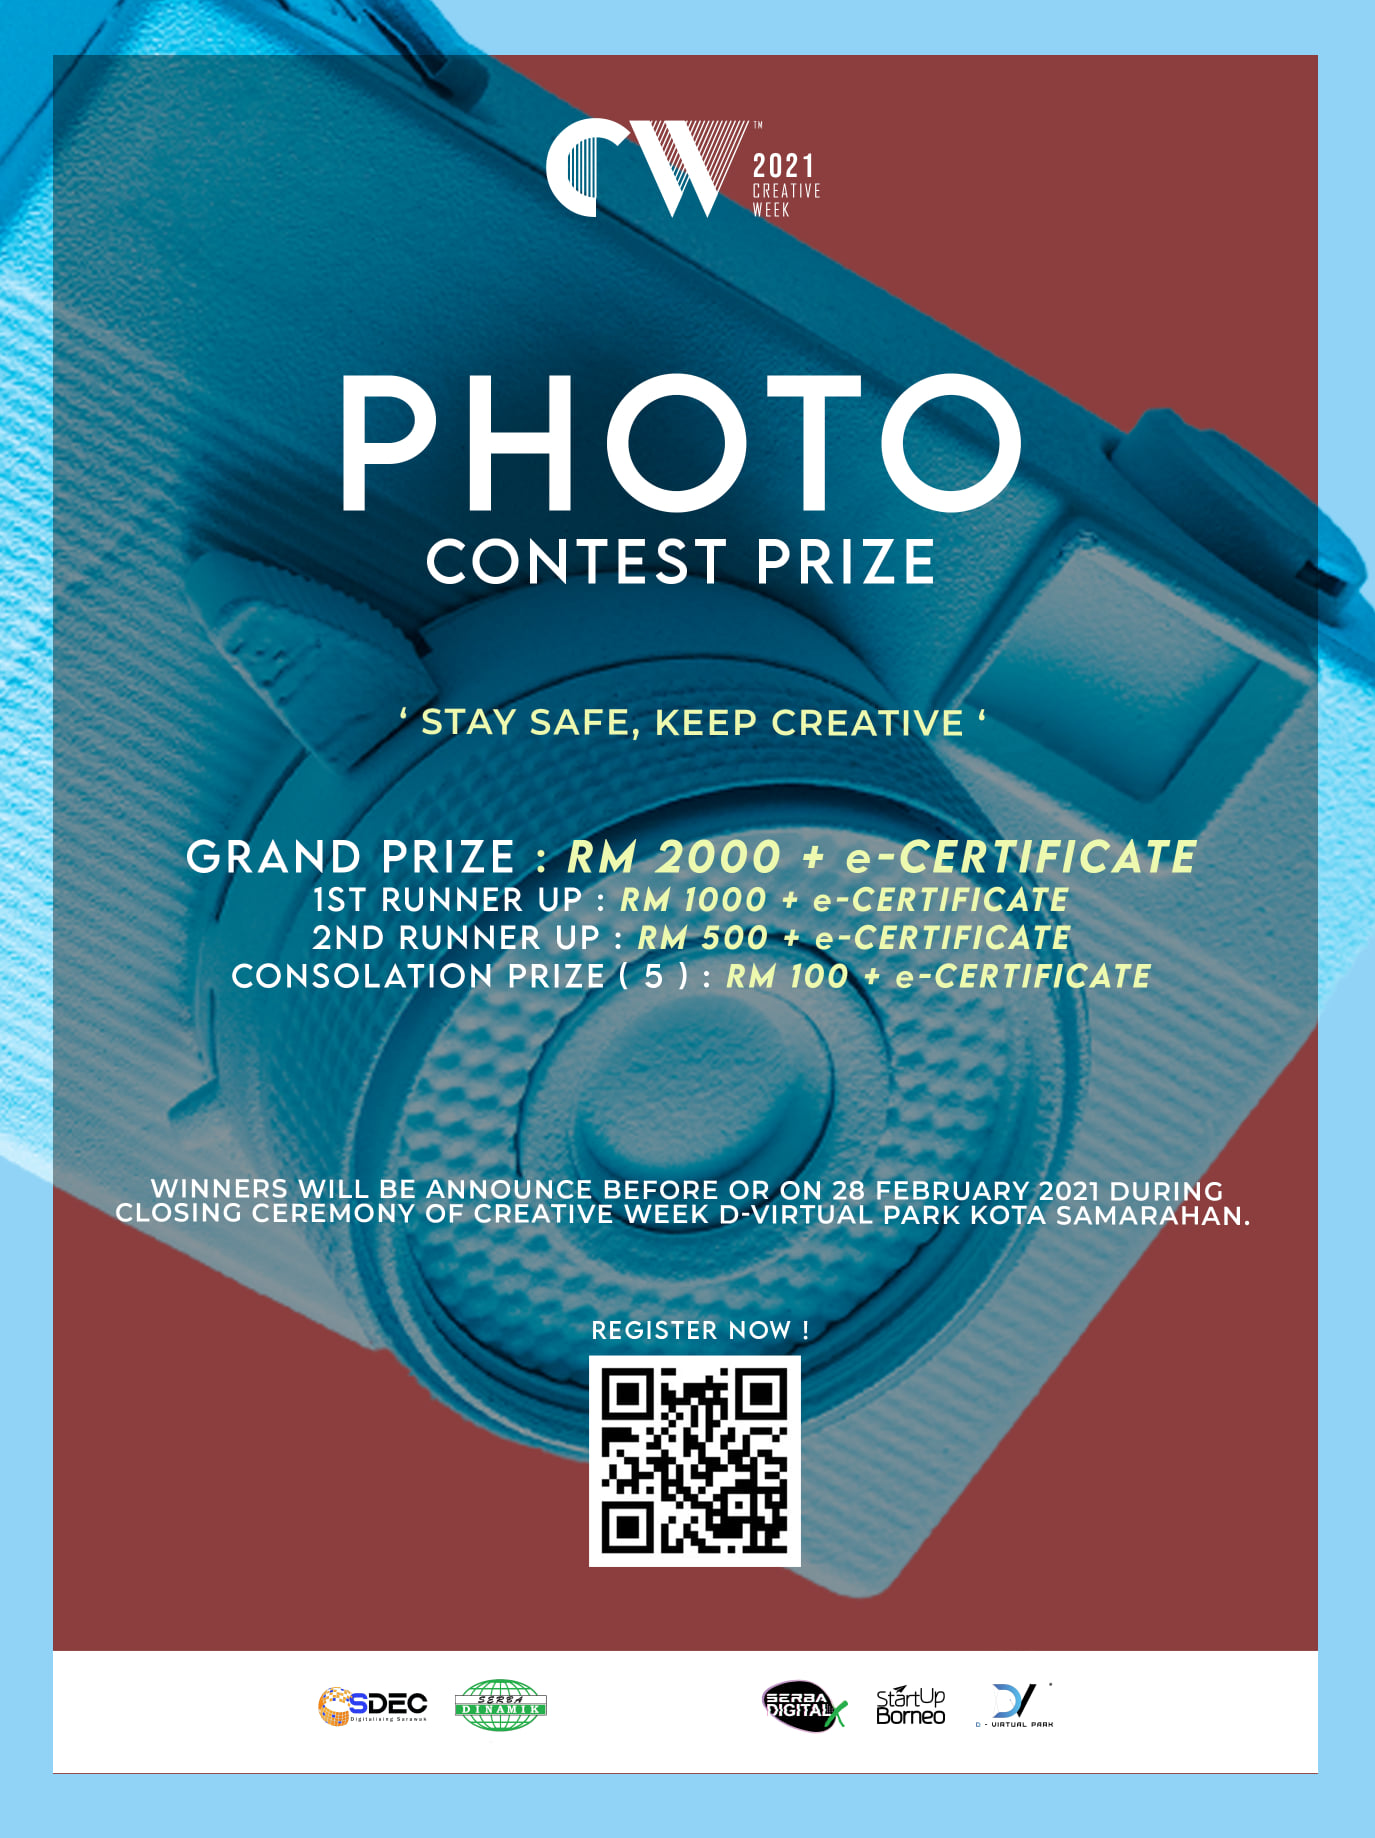 Creative Week 2021 Announces Photography Contest